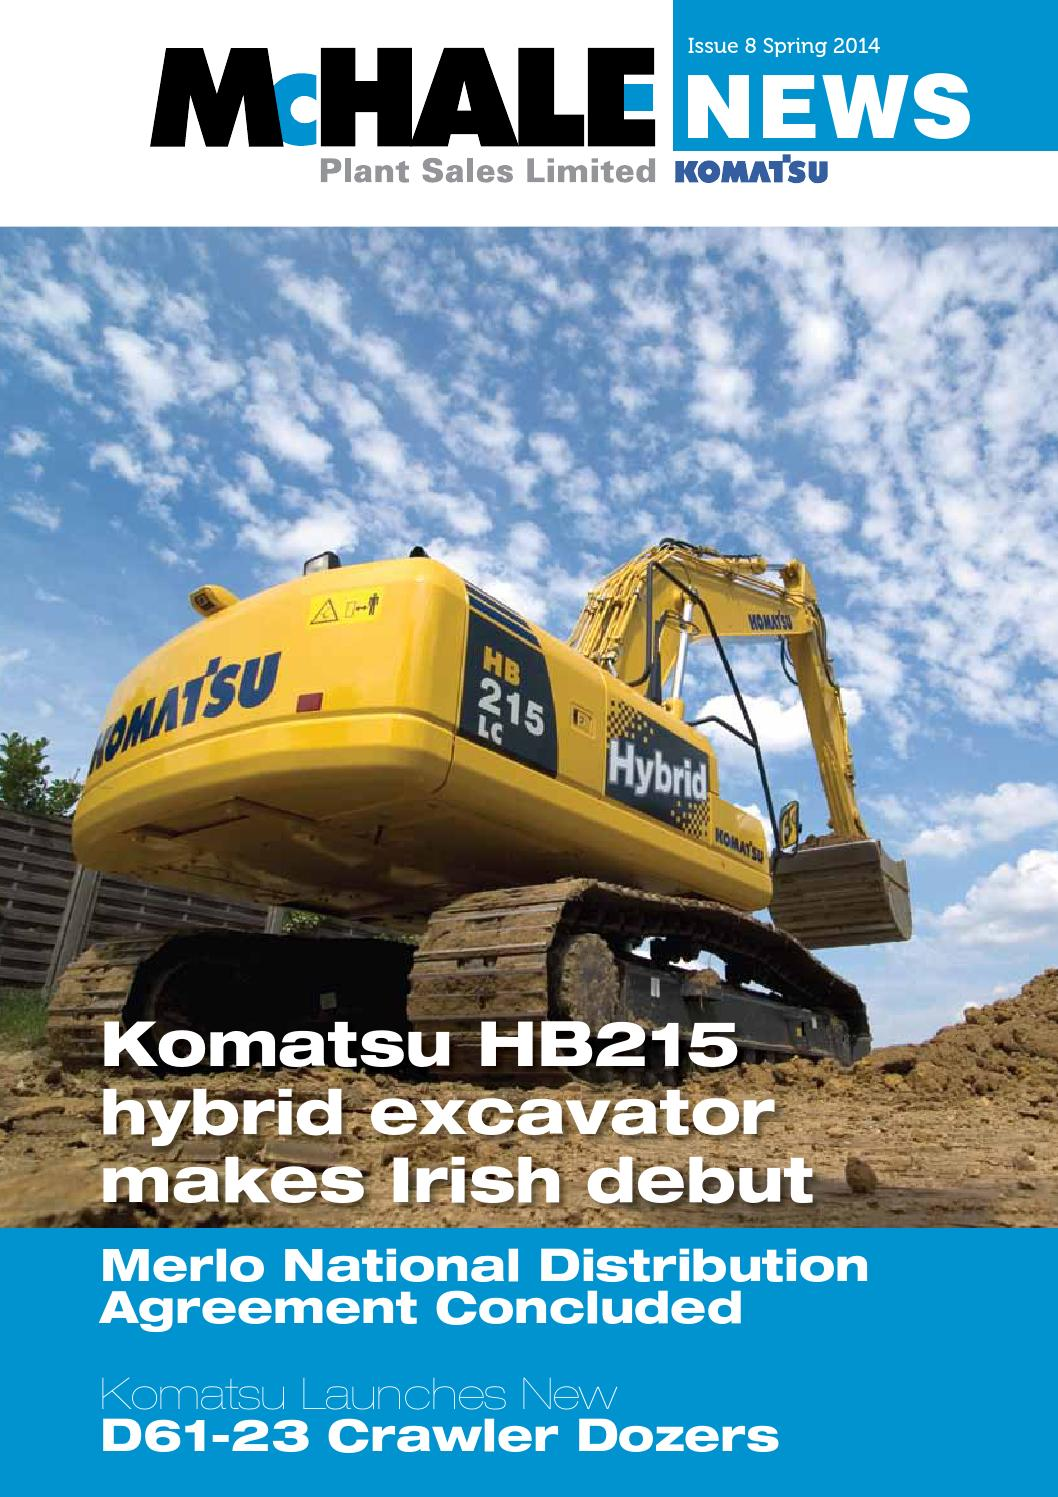 Mchale Plant Sales Newsletter Issue 8 2014 By Mchale